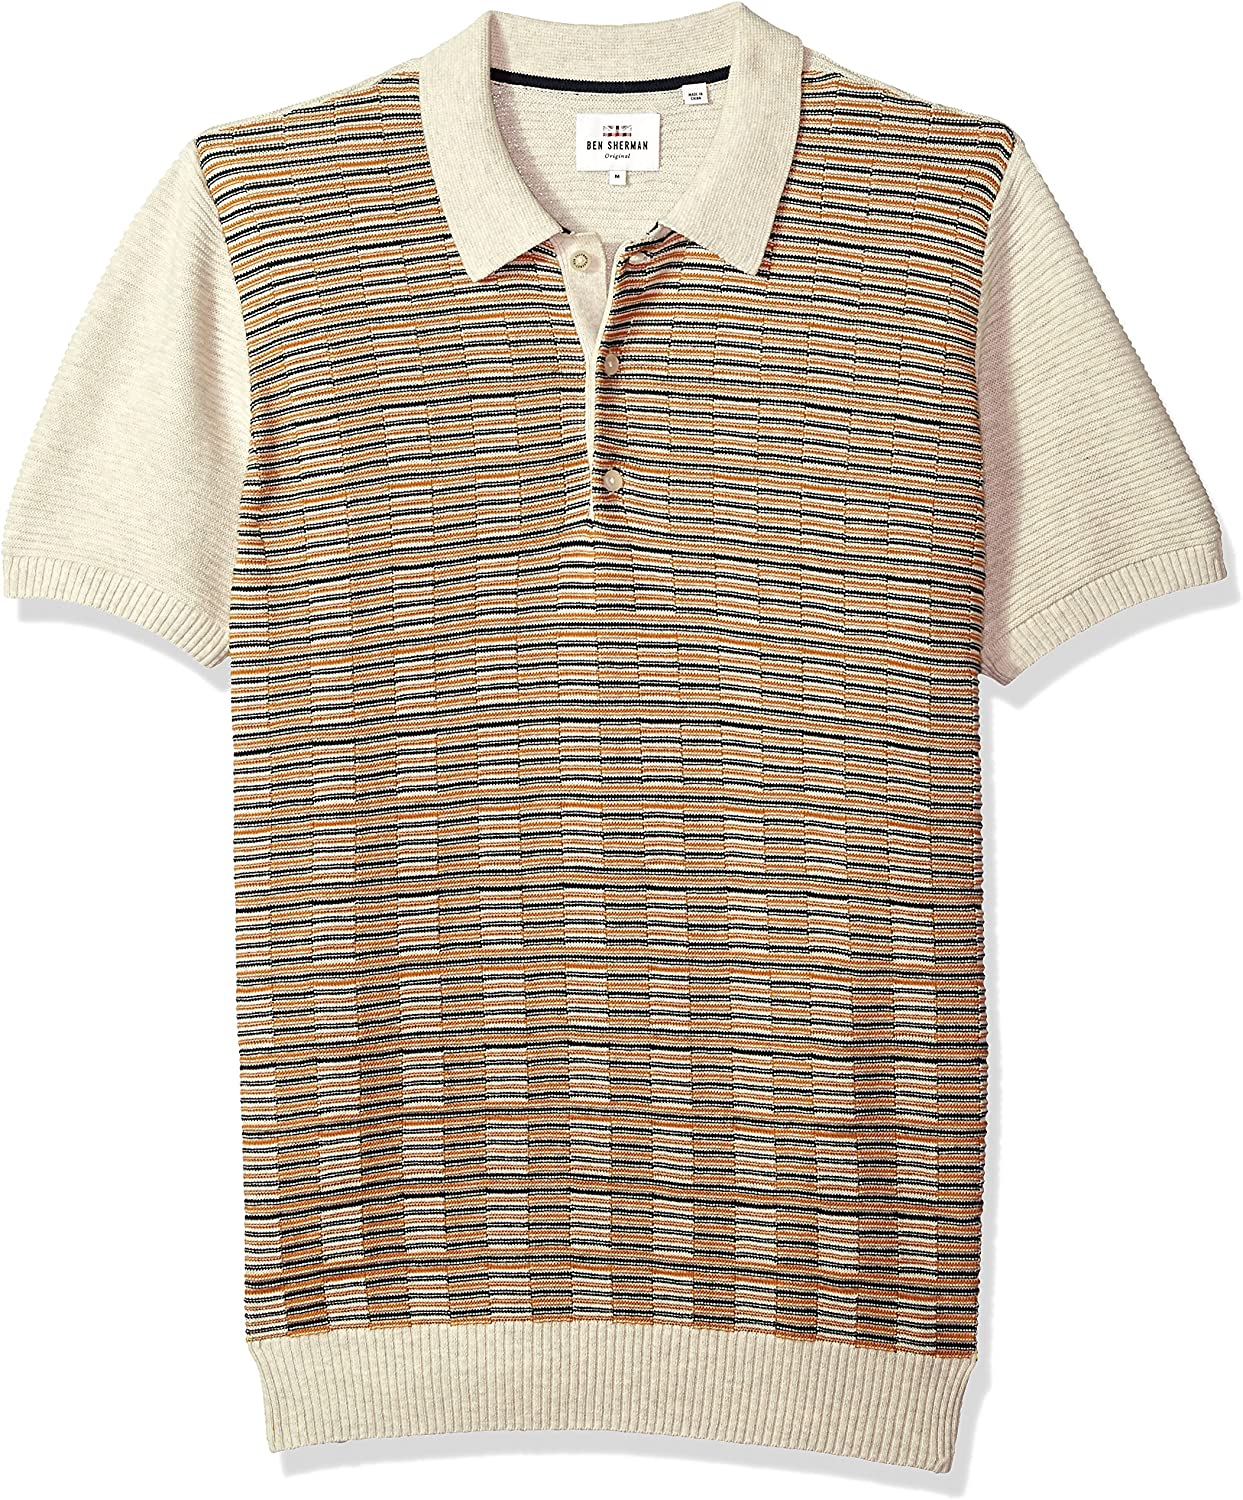 Ben Sherman Hombres ME18S48933 Manga Corta Camisa Polo - Beige ...